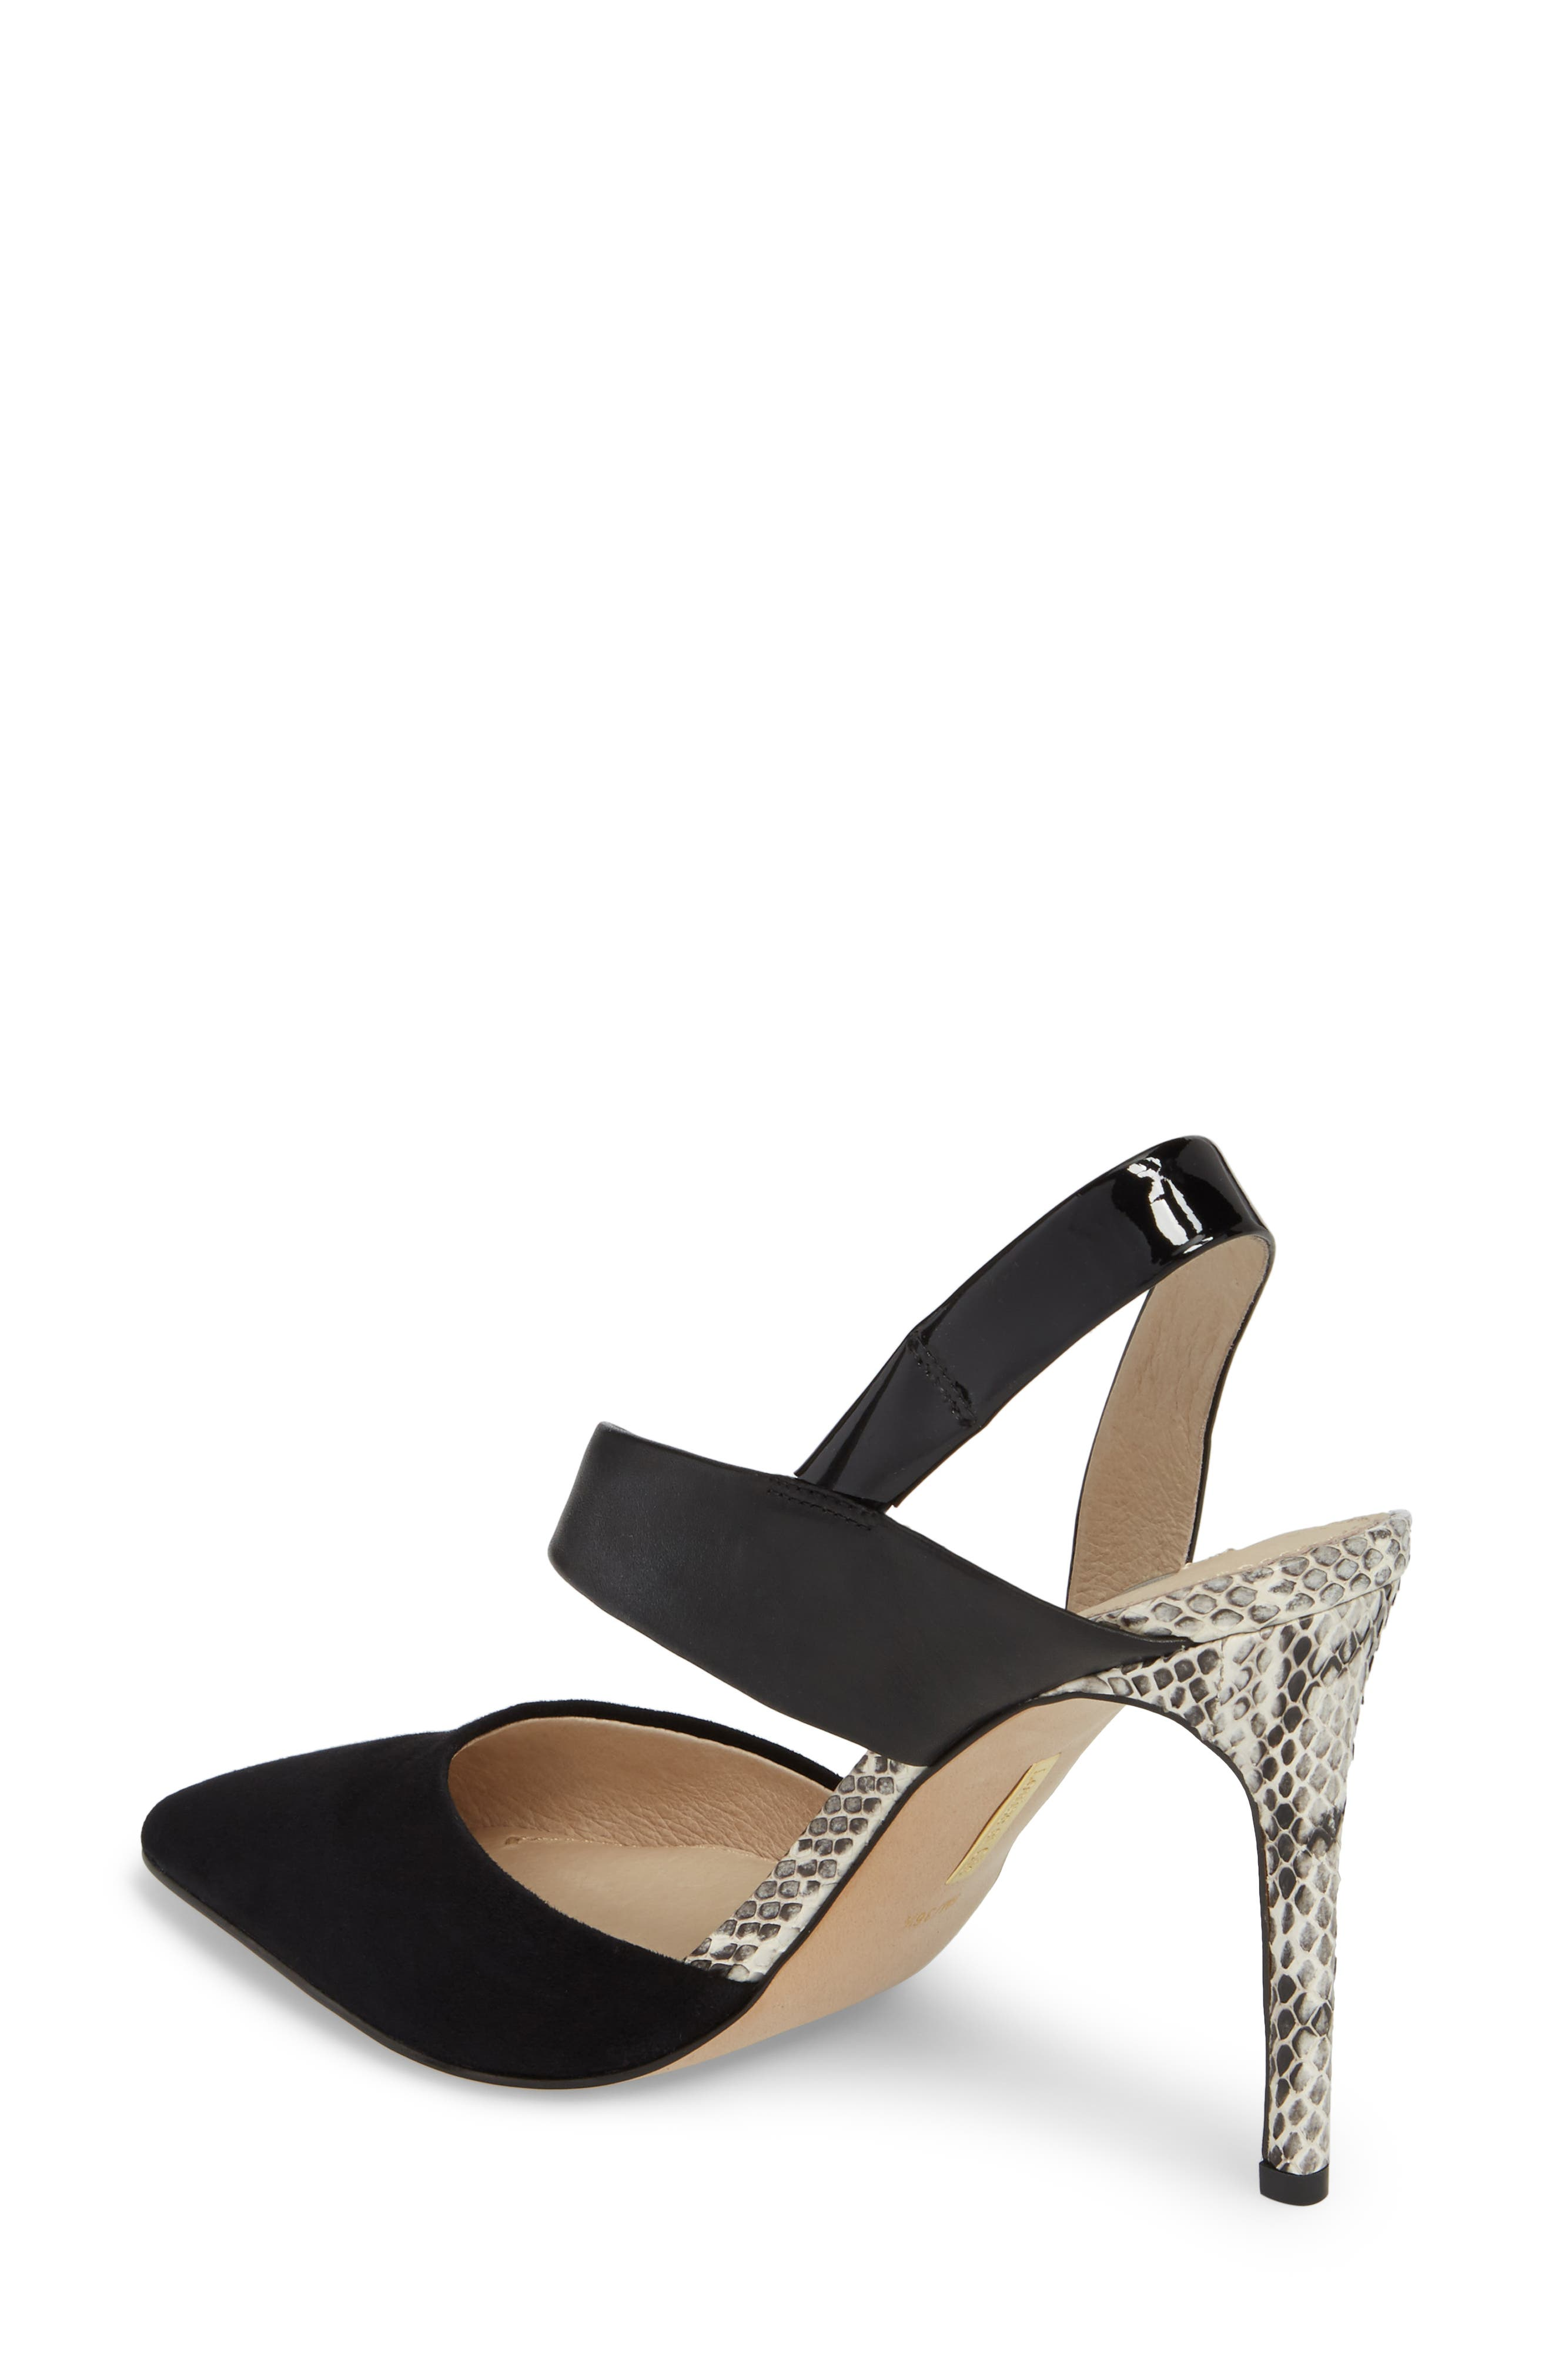 Jerry Pointy Toe Slingback Pump,                             Alternate thumbnail 2, color,                             001